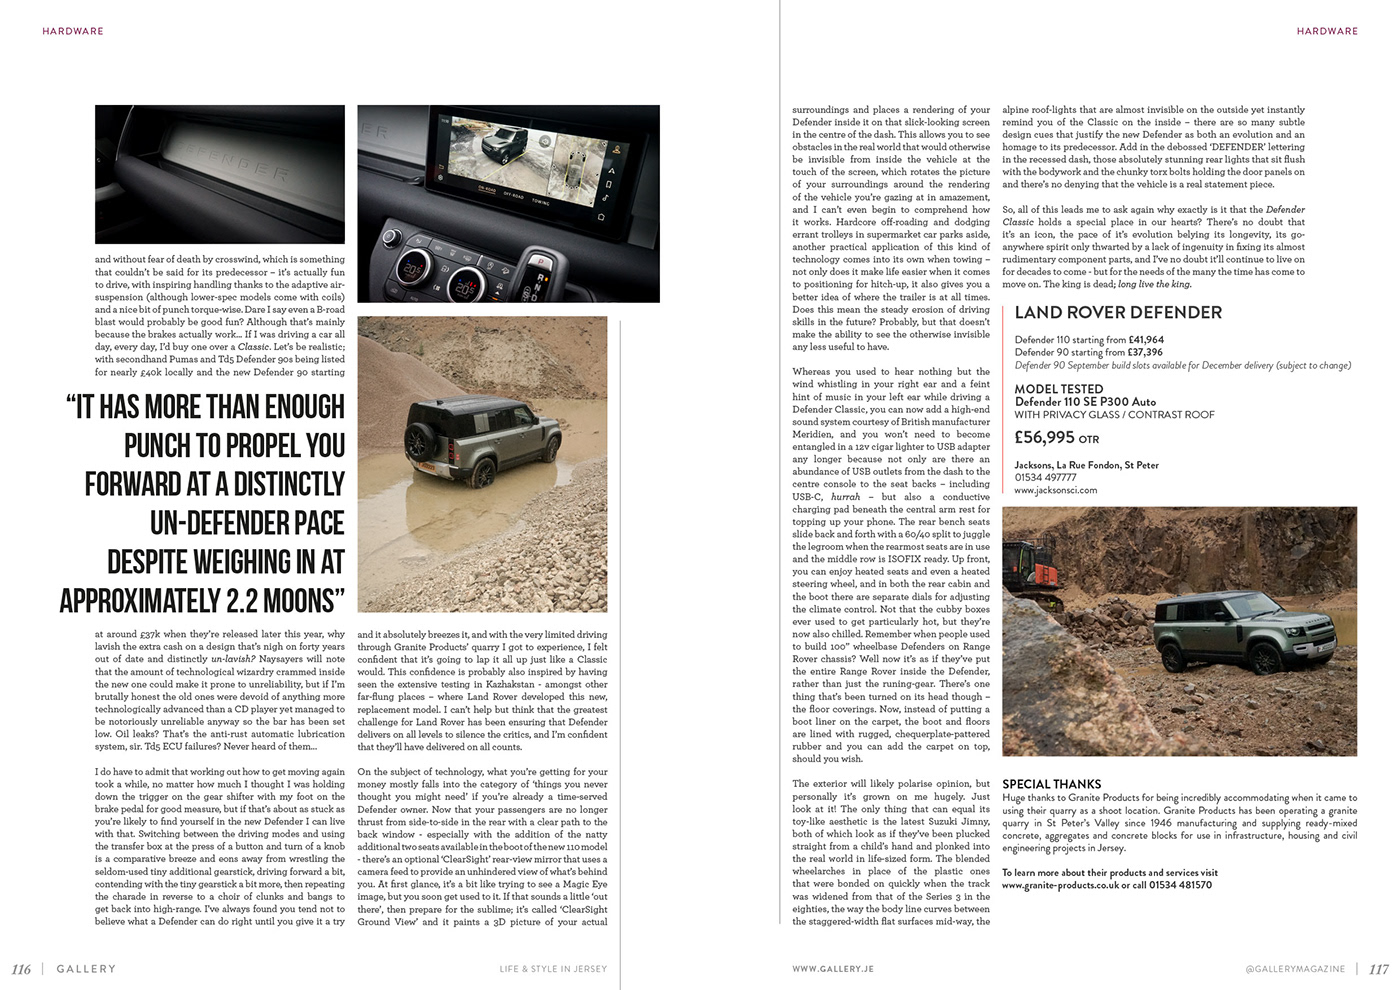 Automotive journalism Automotive Photography car photography car review  editorial design  journalism   Land Rover magazine new defender writing